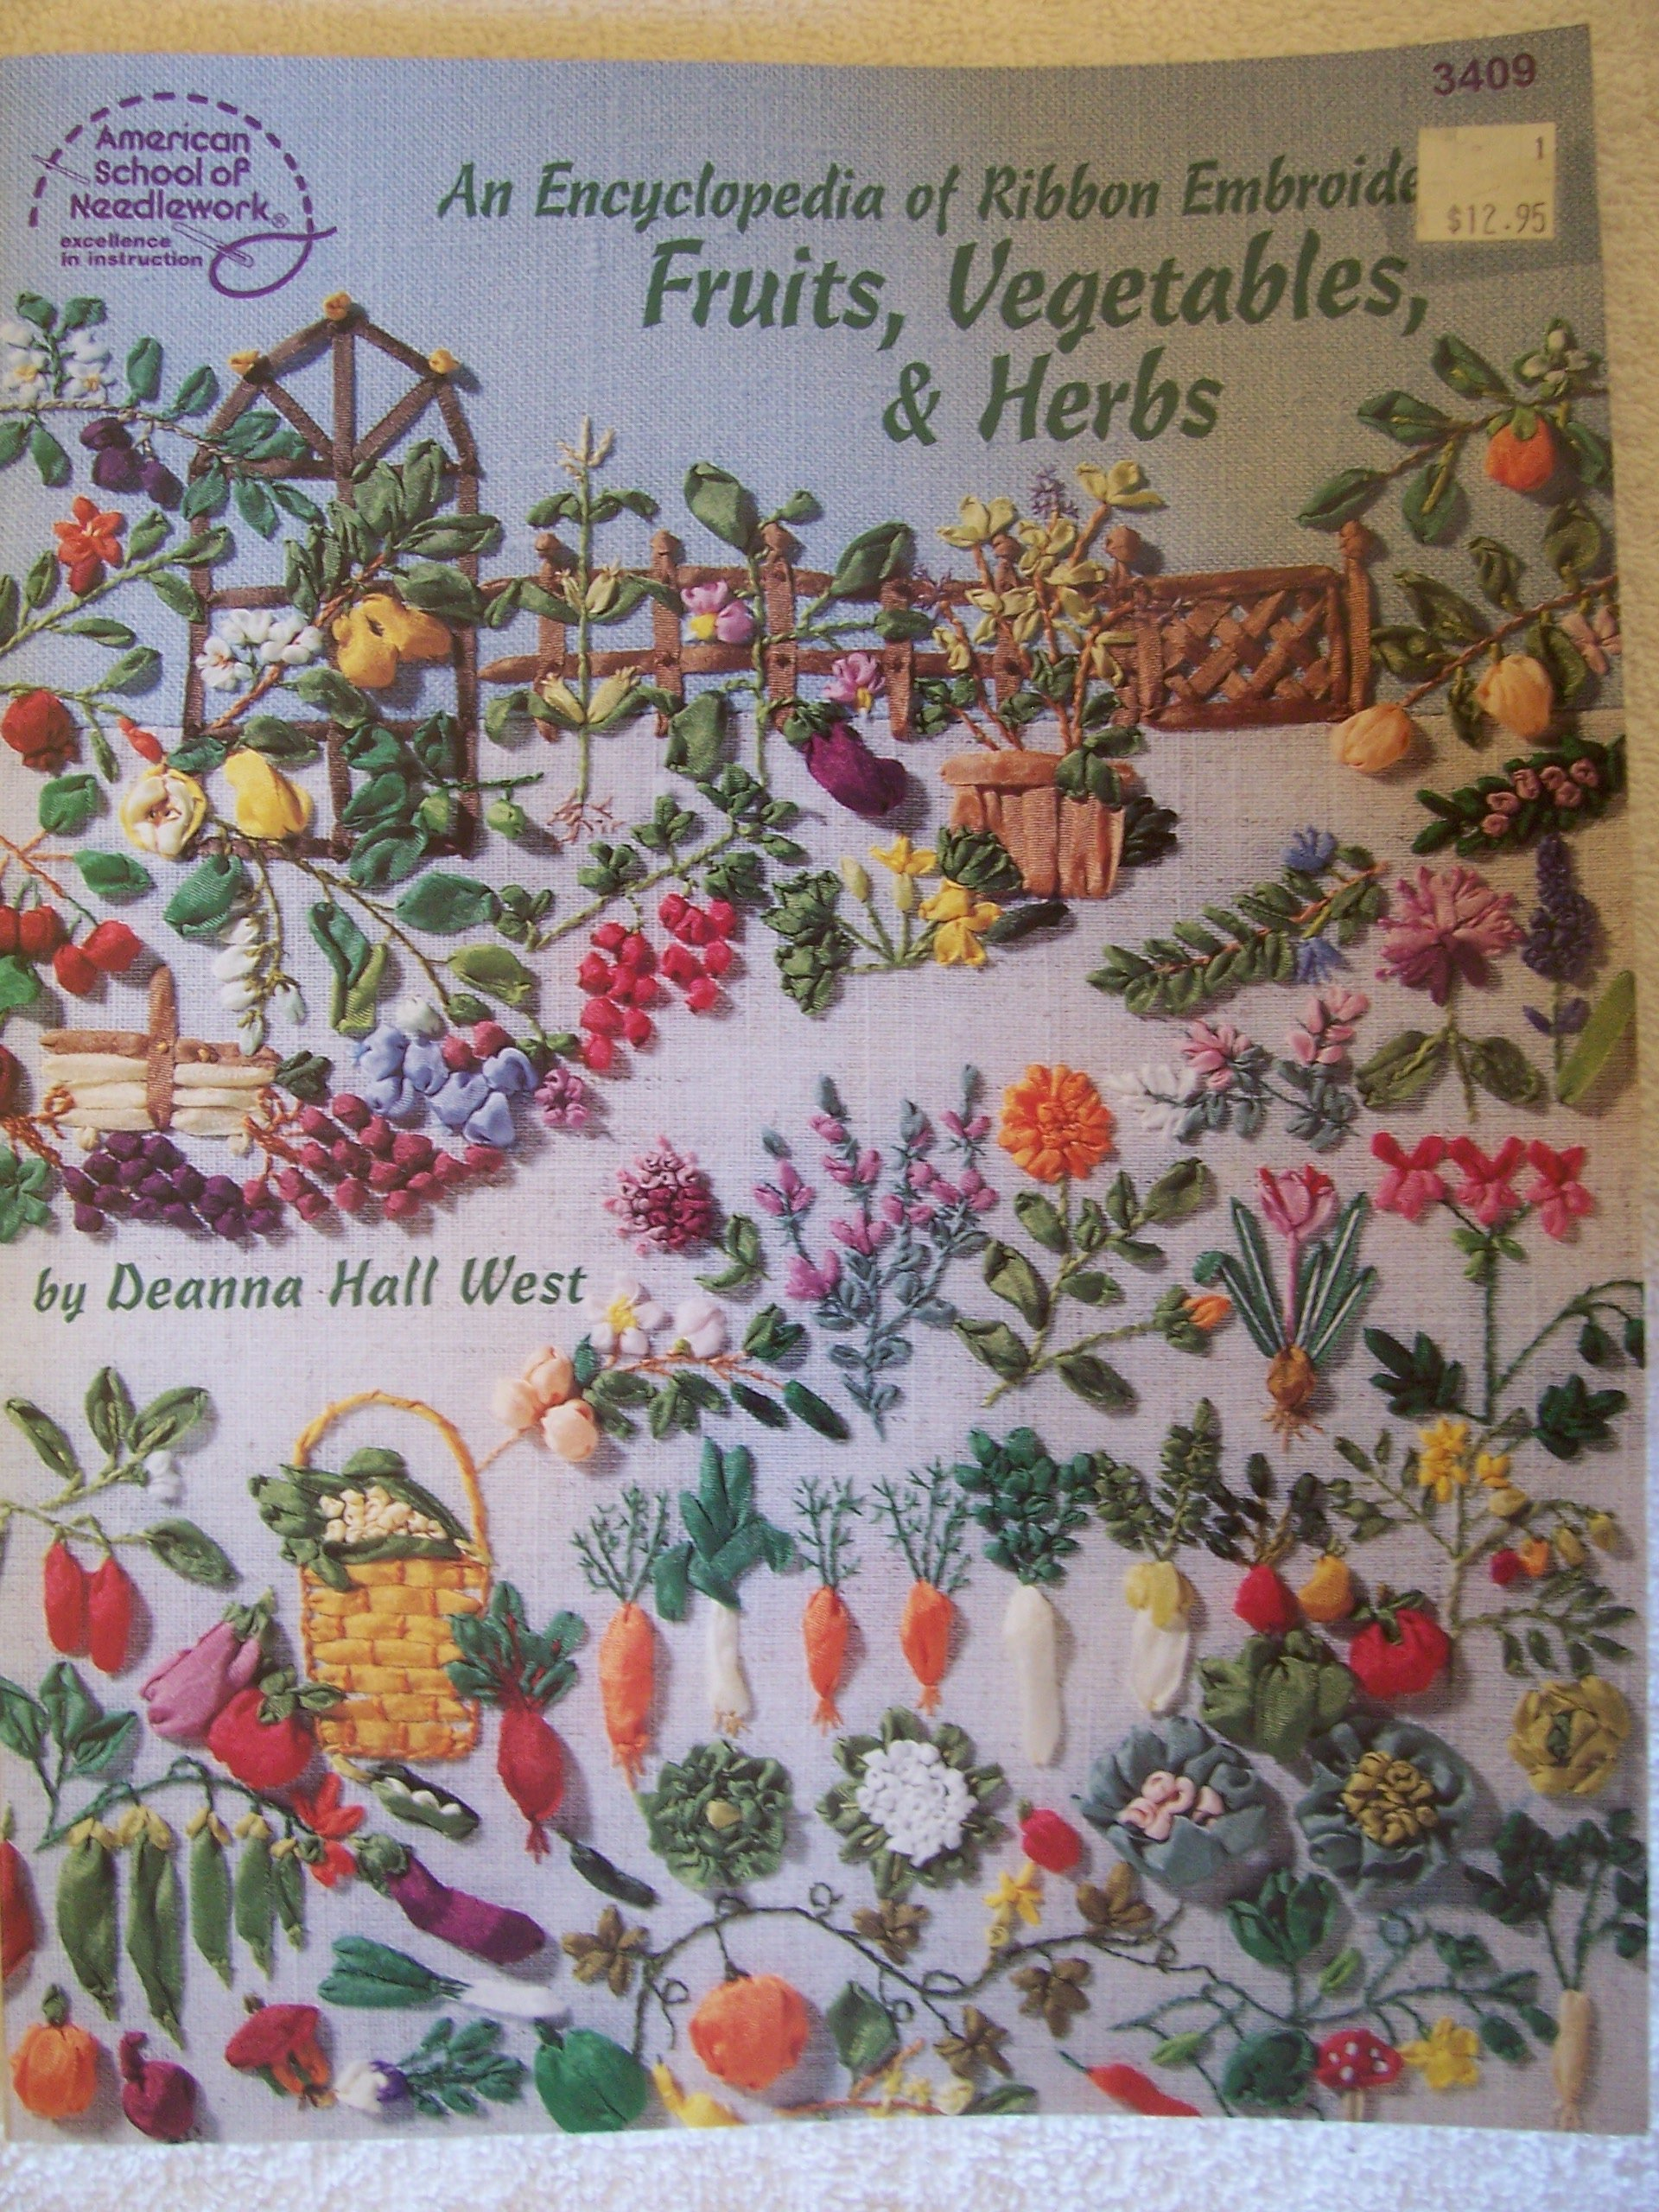 An Encyclopedia of Ribbon Embroidery: Fruits, Vegetables, and Herbs